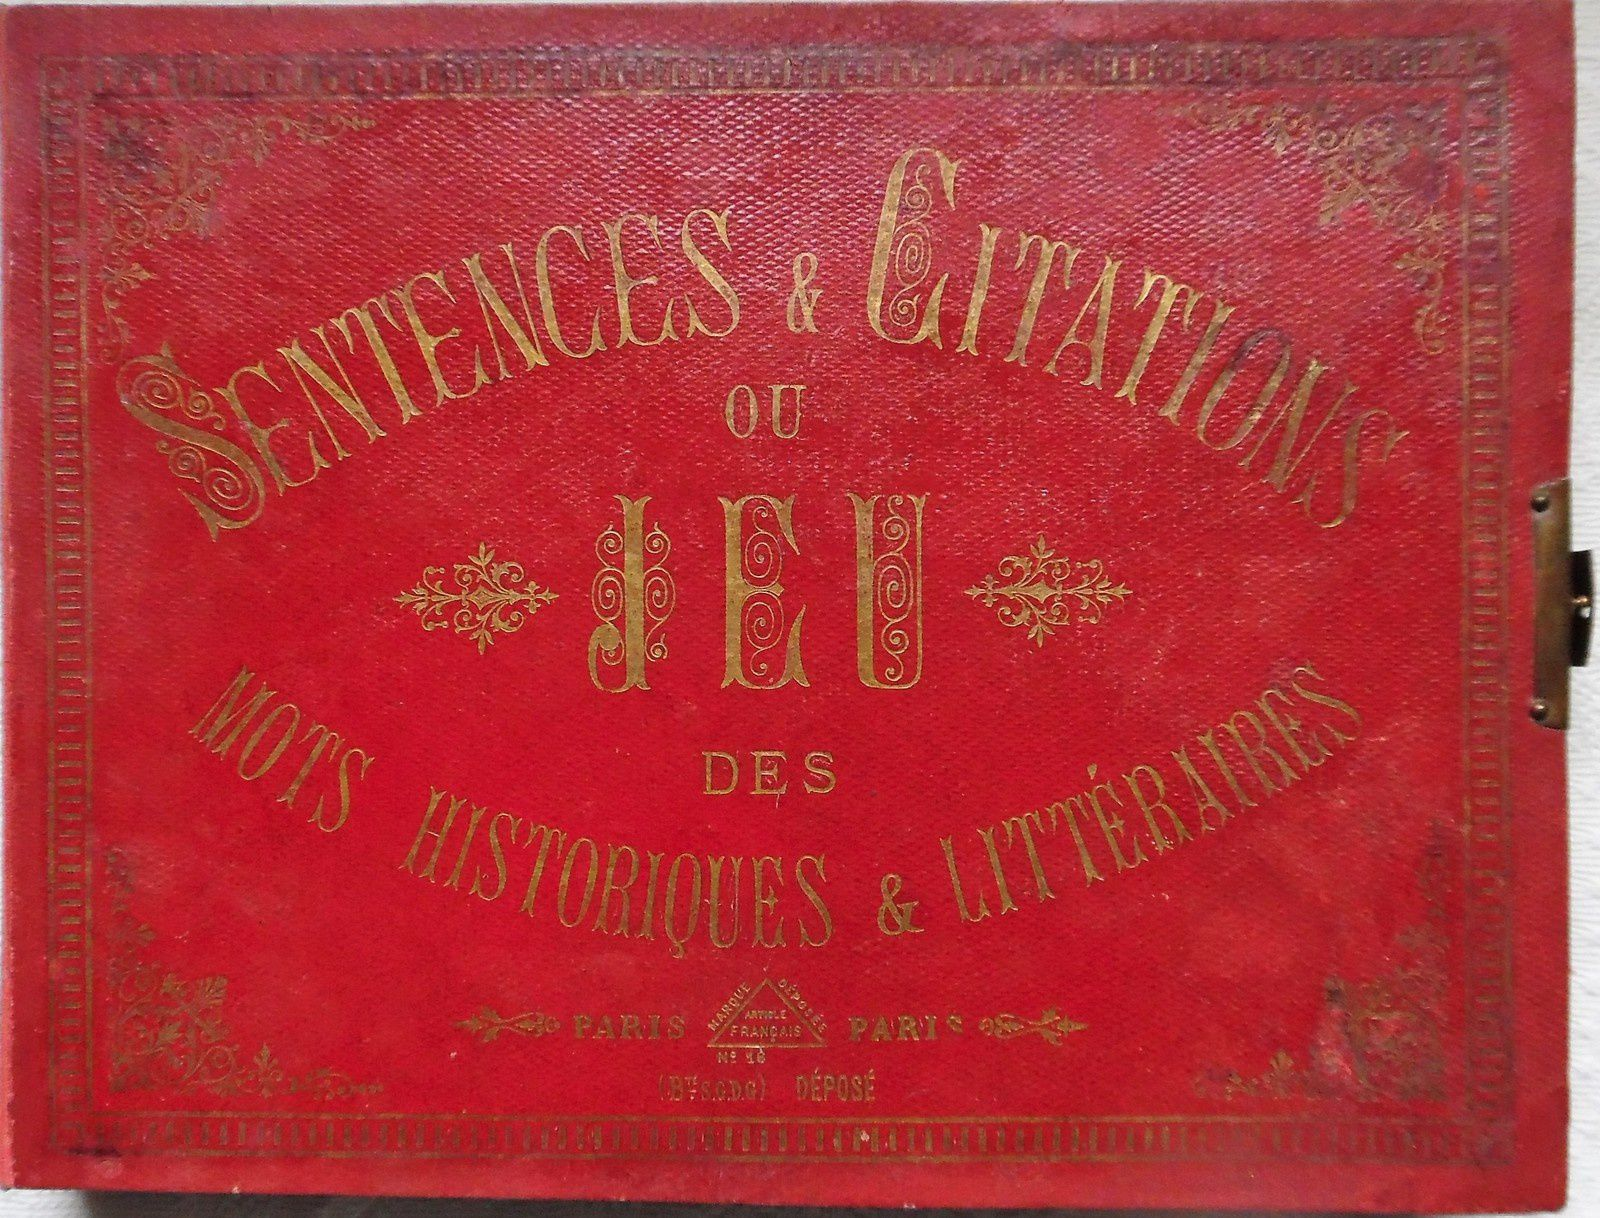 sentences et citations ,version de luxe